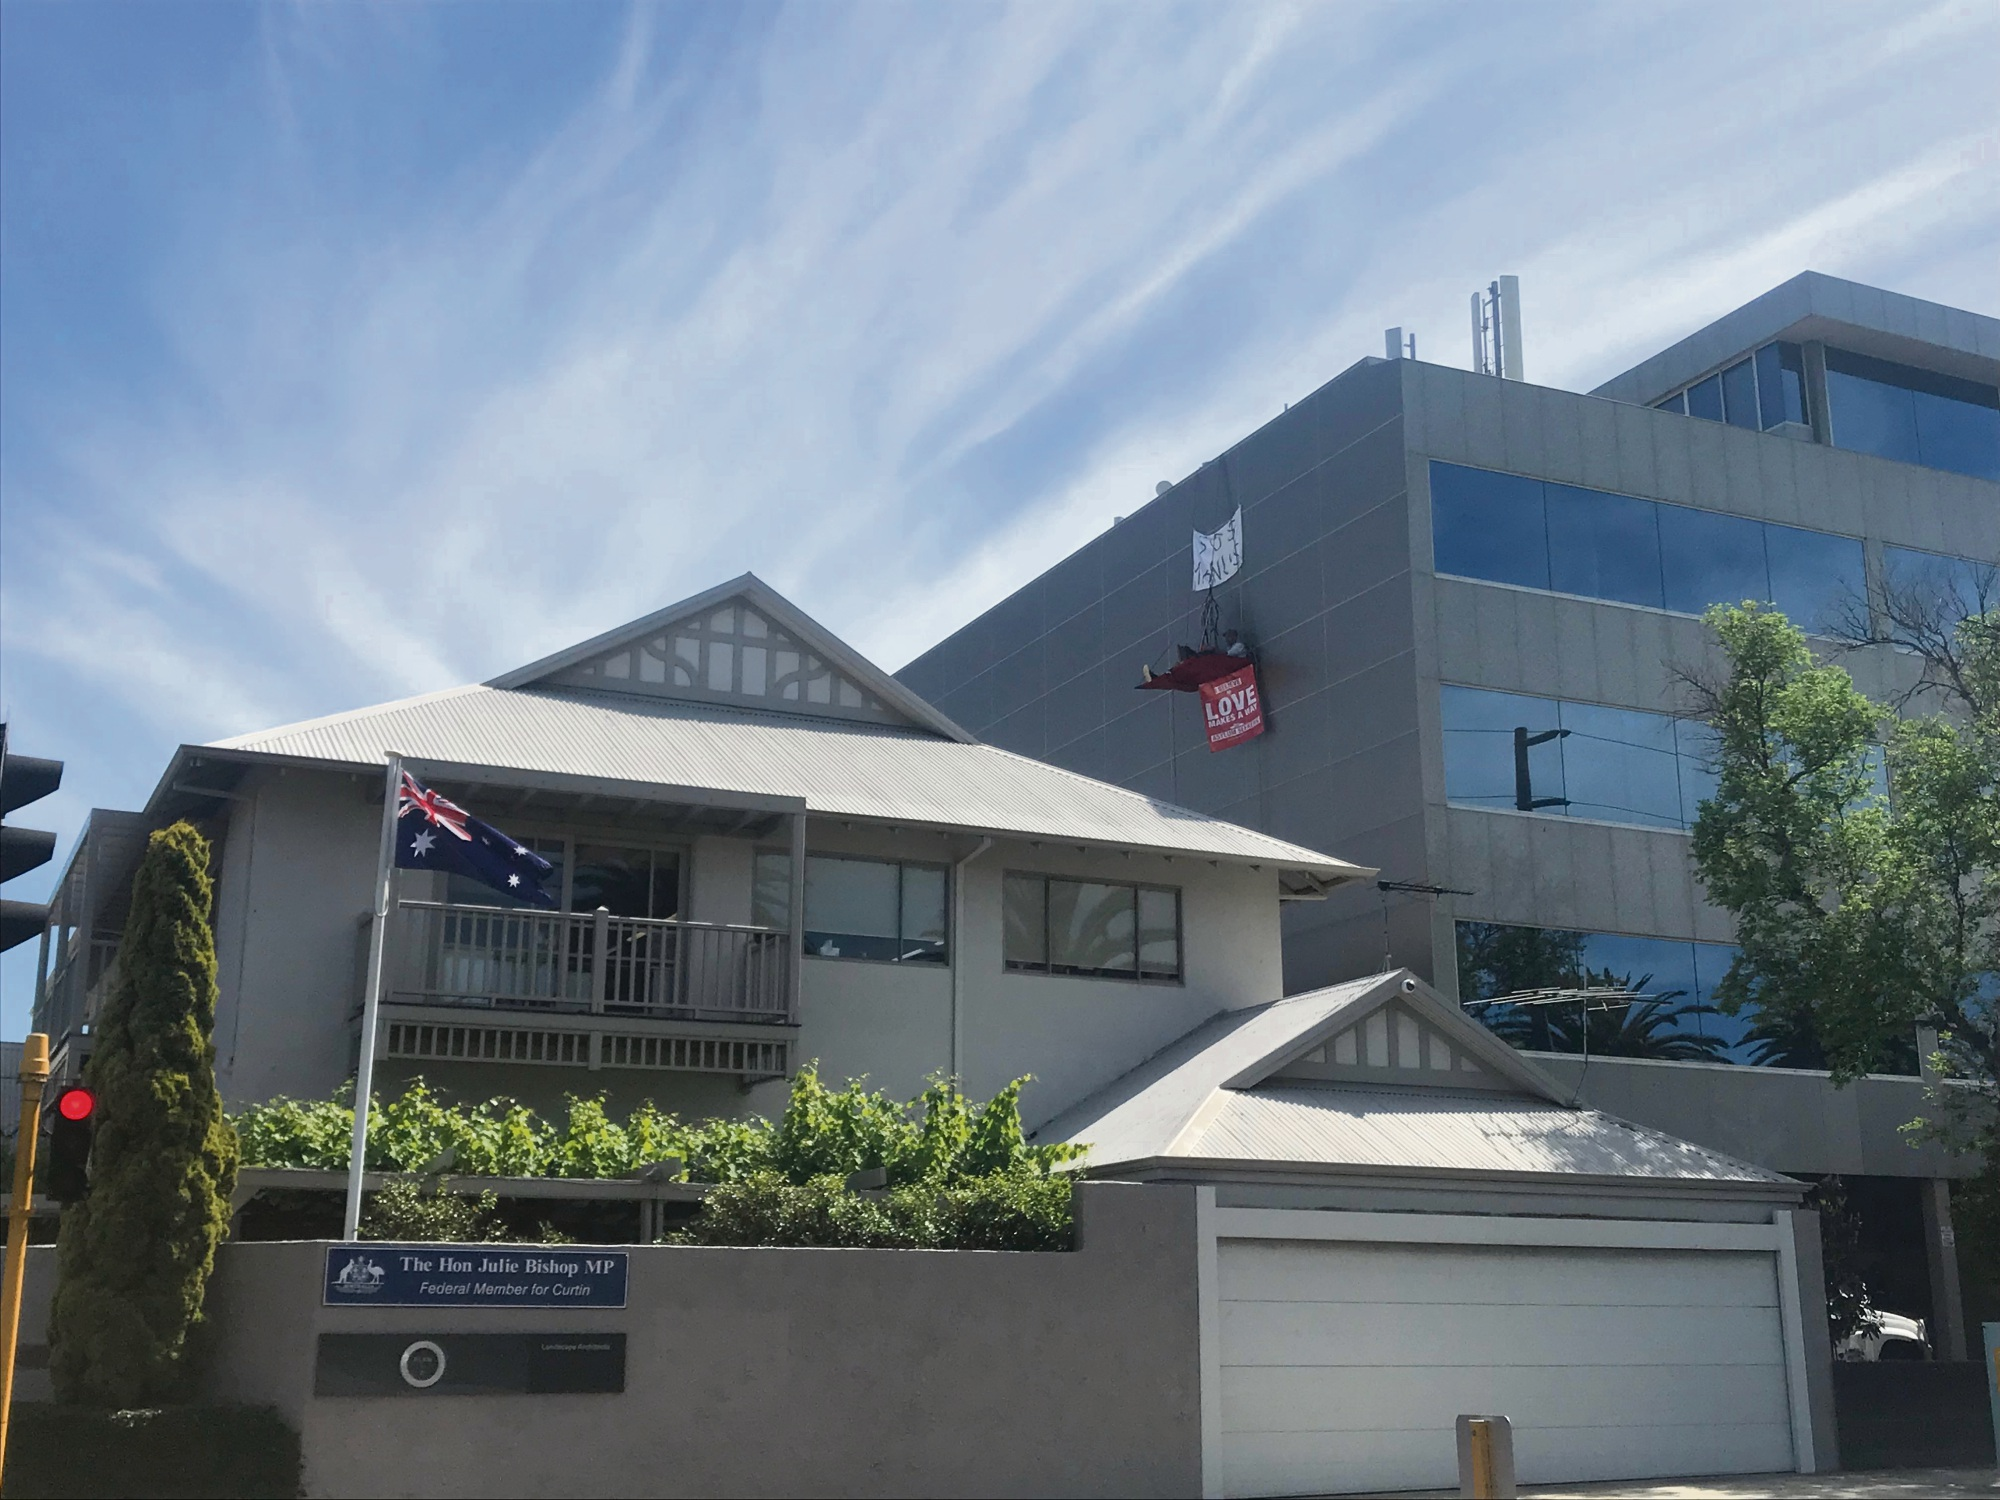 Subiaco: two men suspended above Julie Bishop's office in protest against conditions on Manus Island removed by police